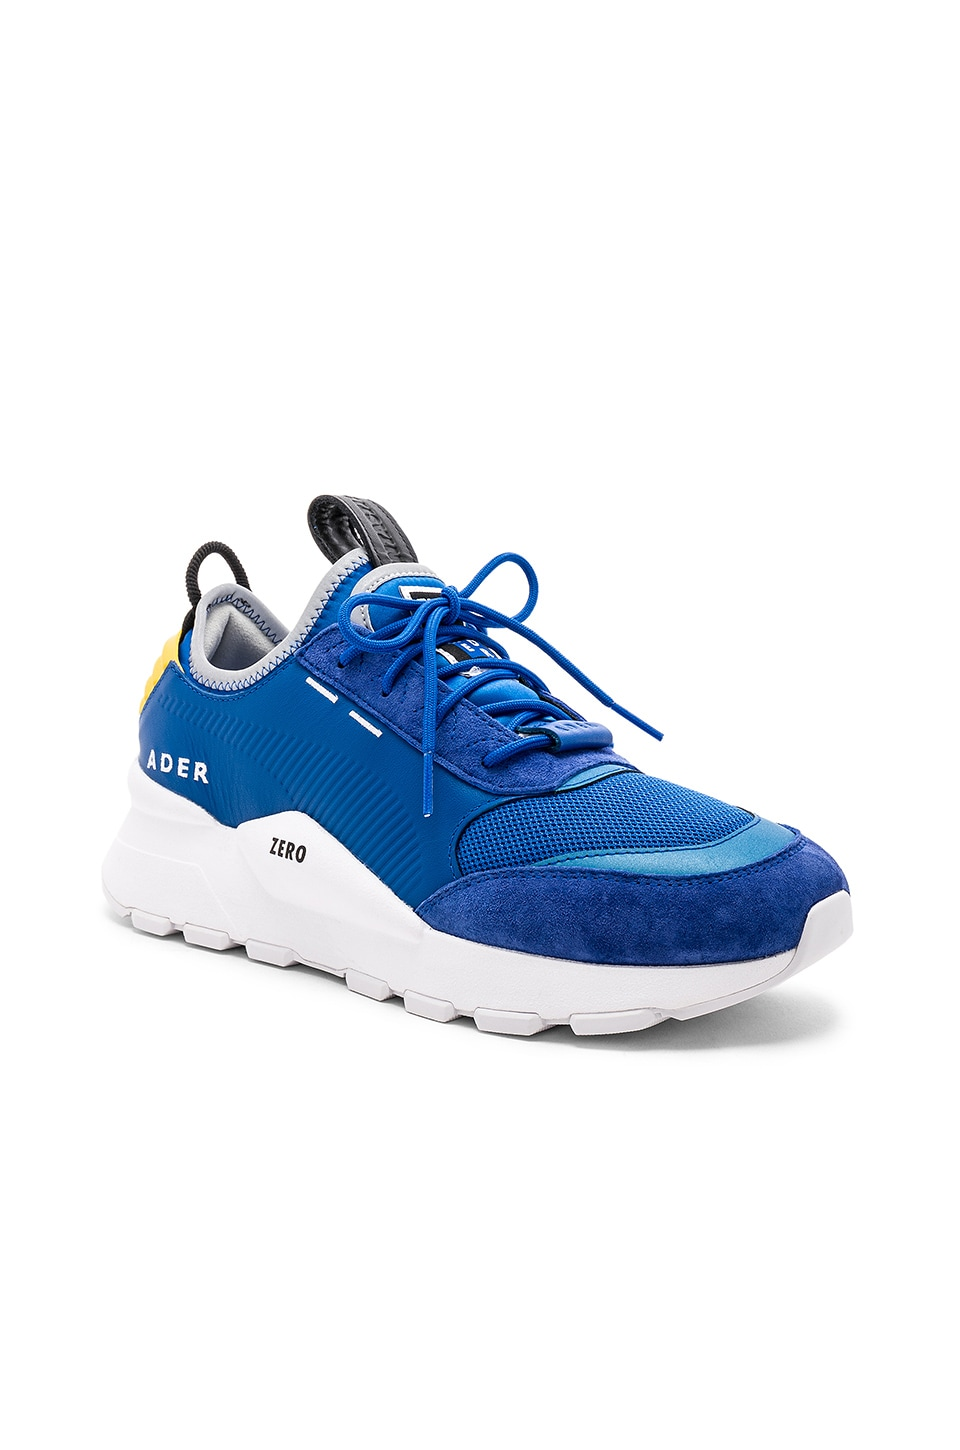 Puma Select x ADER ERROR RS-O in Lapis Blue